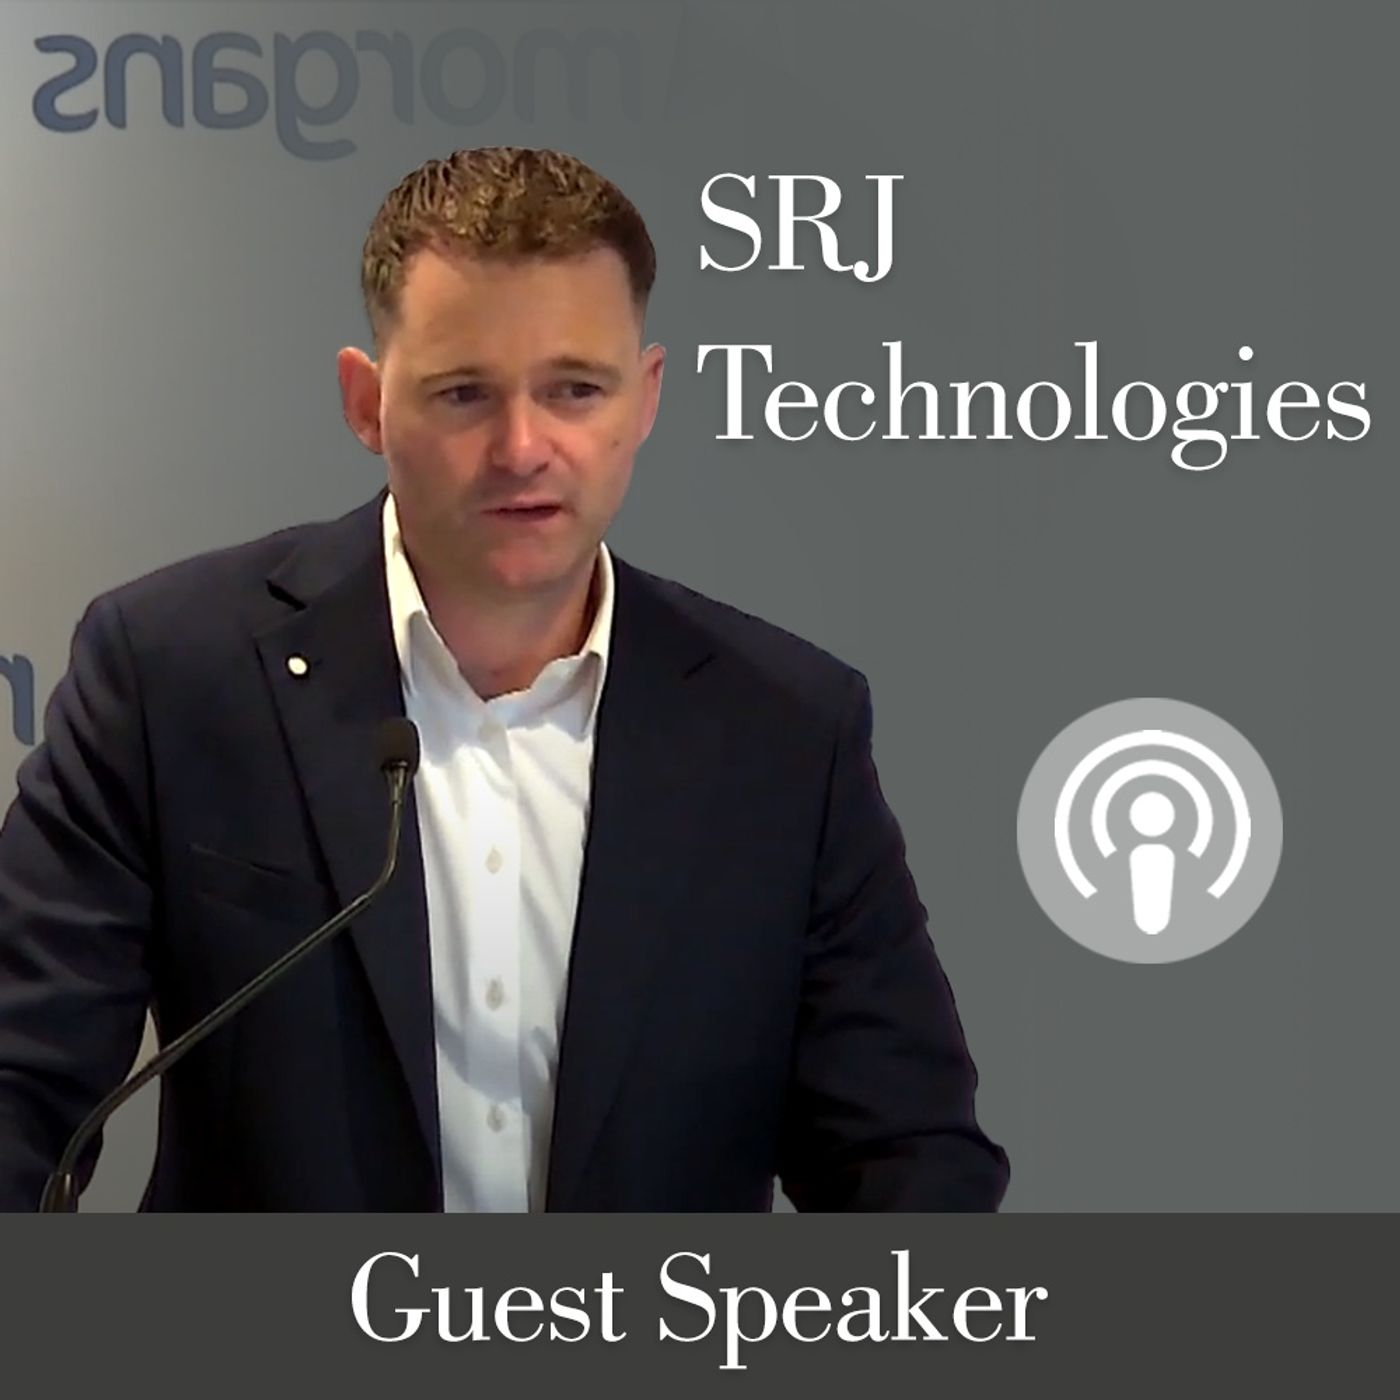 SRJ Technologies (ASX:SRJ): Alex Wood, Founder and Chief Executive Officer